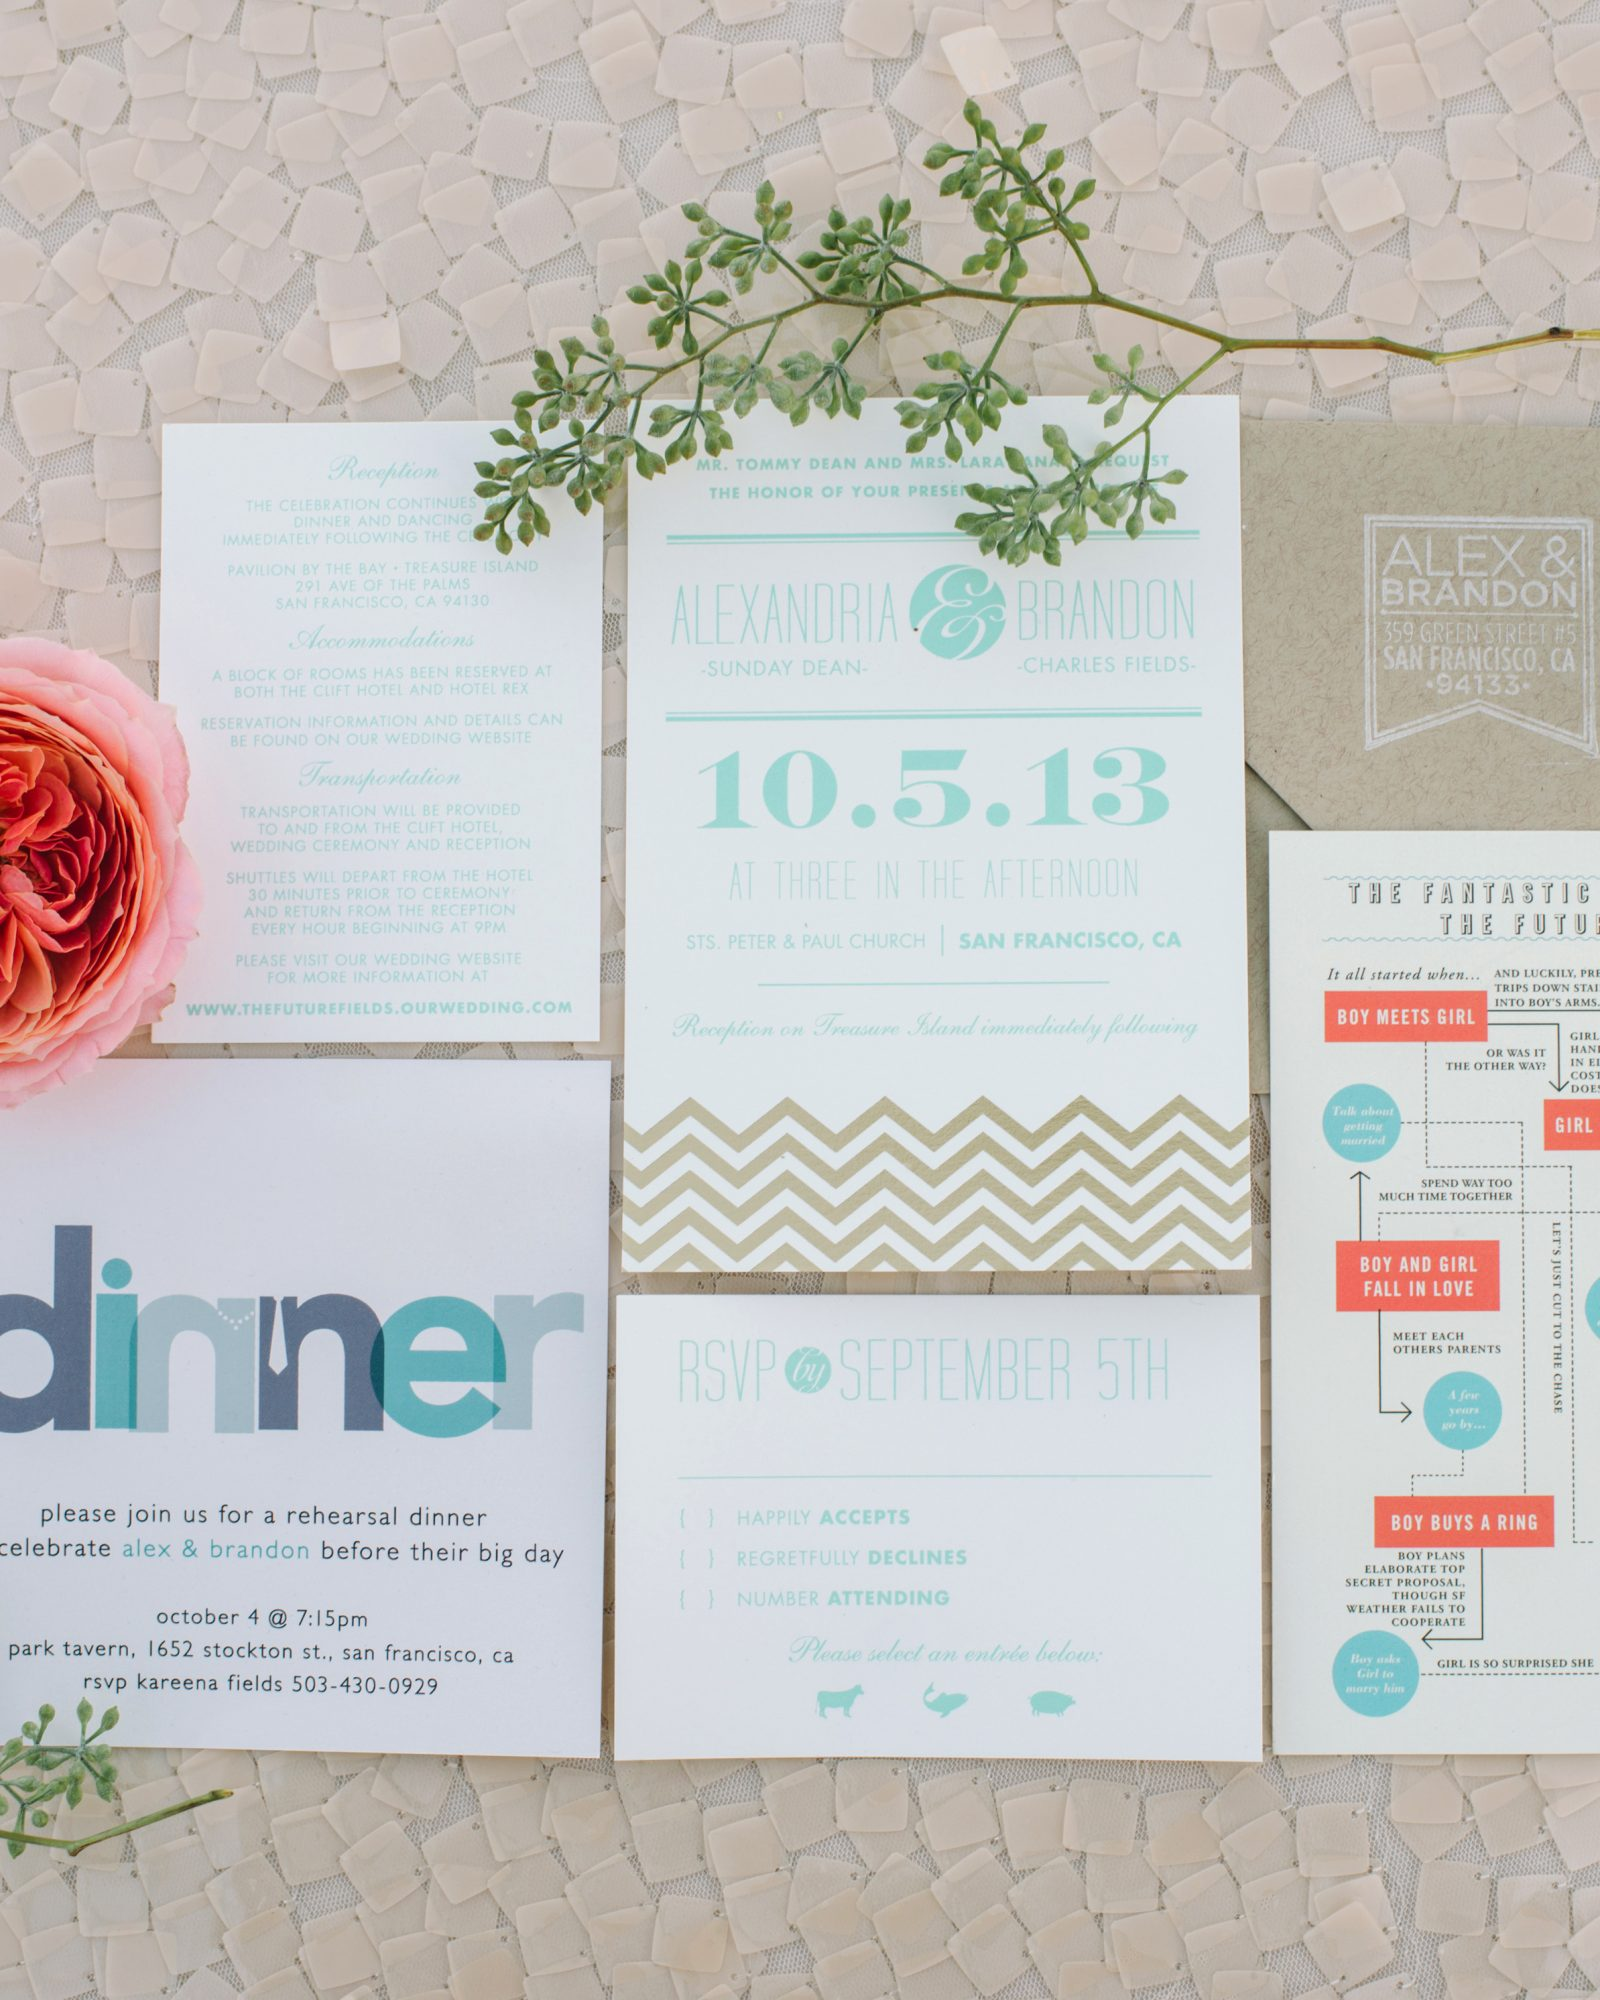 alex-brandon-wedding-invite-096-s111338-0714.jpg